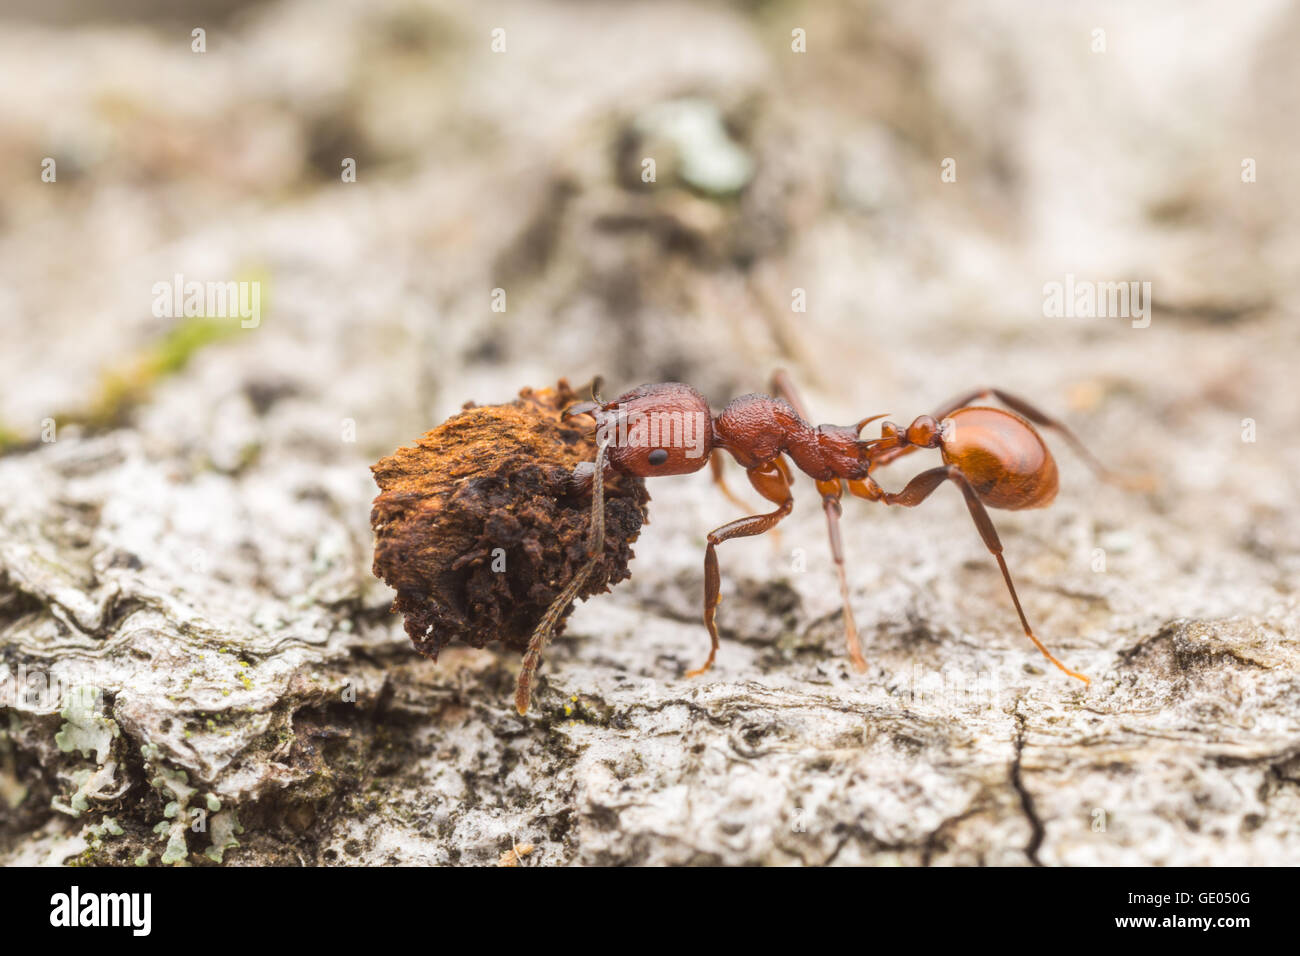 A Spine-waisted Ant (Aphaenogaster tennesseensis) worker carries scavenged food back to its nest. - Stock Image